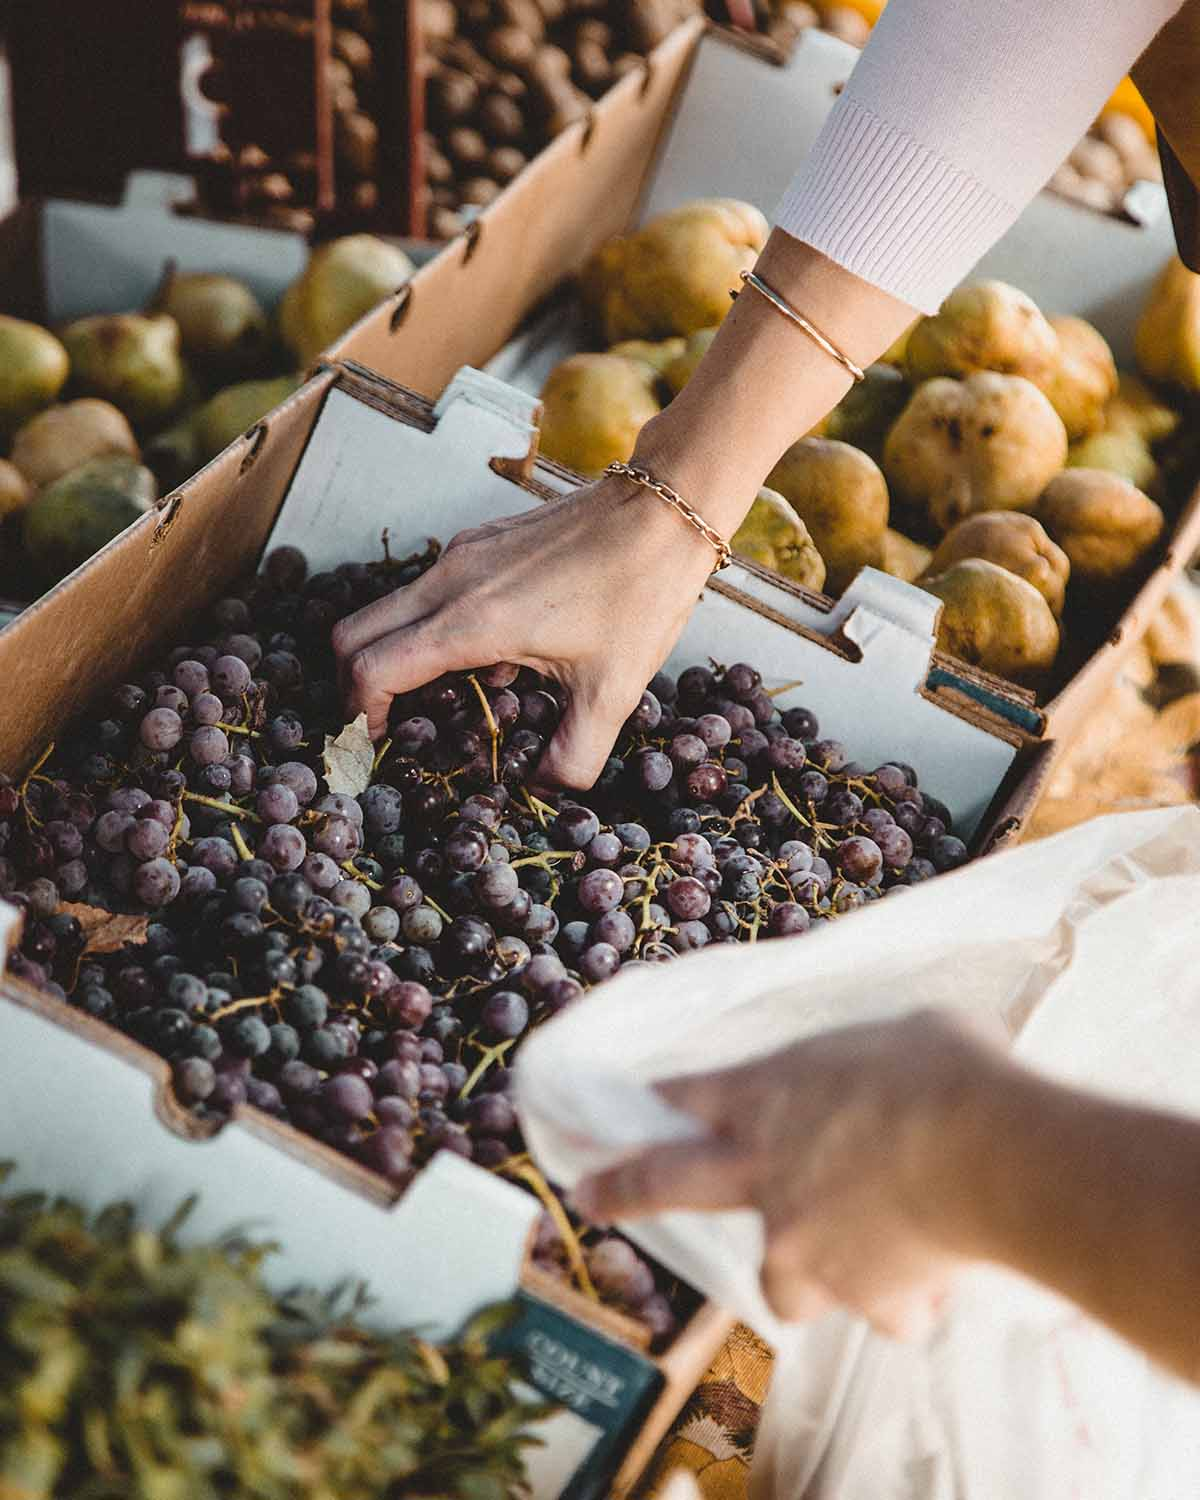 Eat more Sustainably: Buy Seasonal and Local